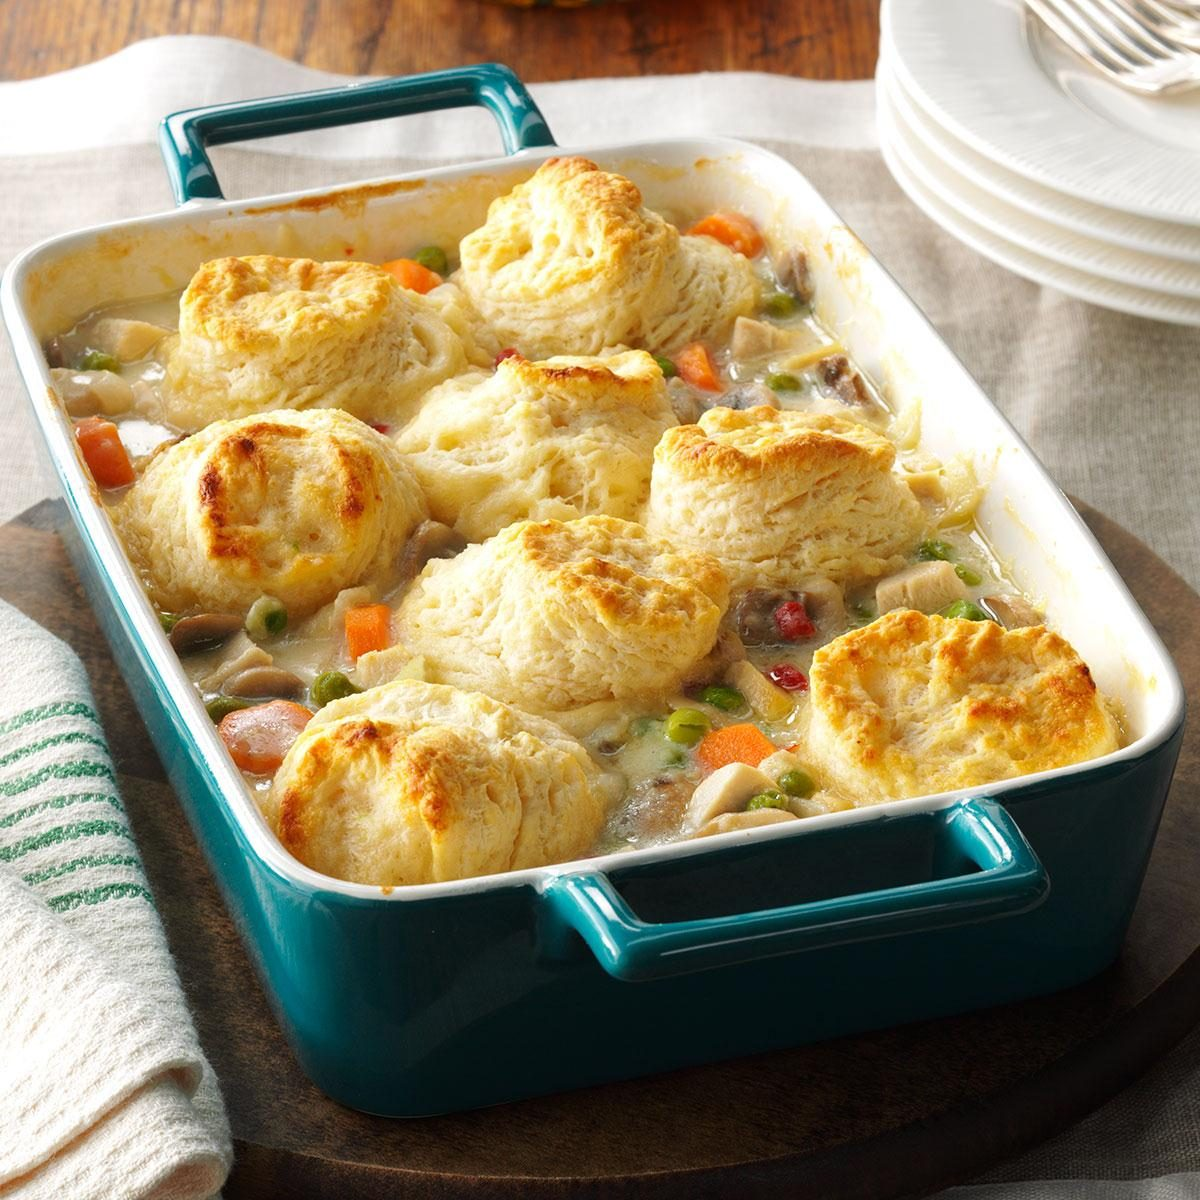 65 of Our Favorite Casserole Recipes